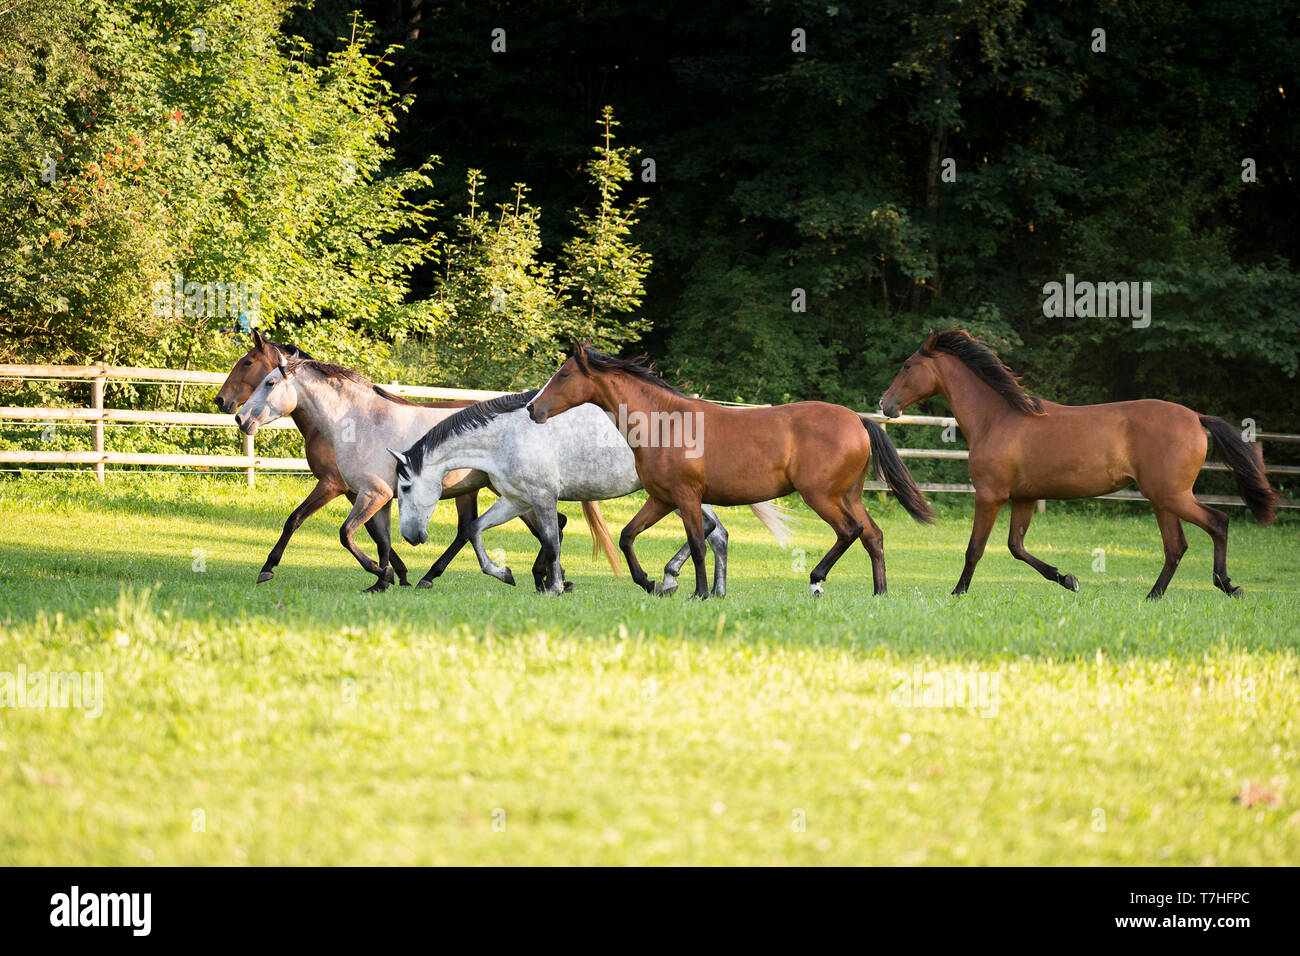 Lusitano. Juvenile mares trotting on a pasture. Germany - Stock Image